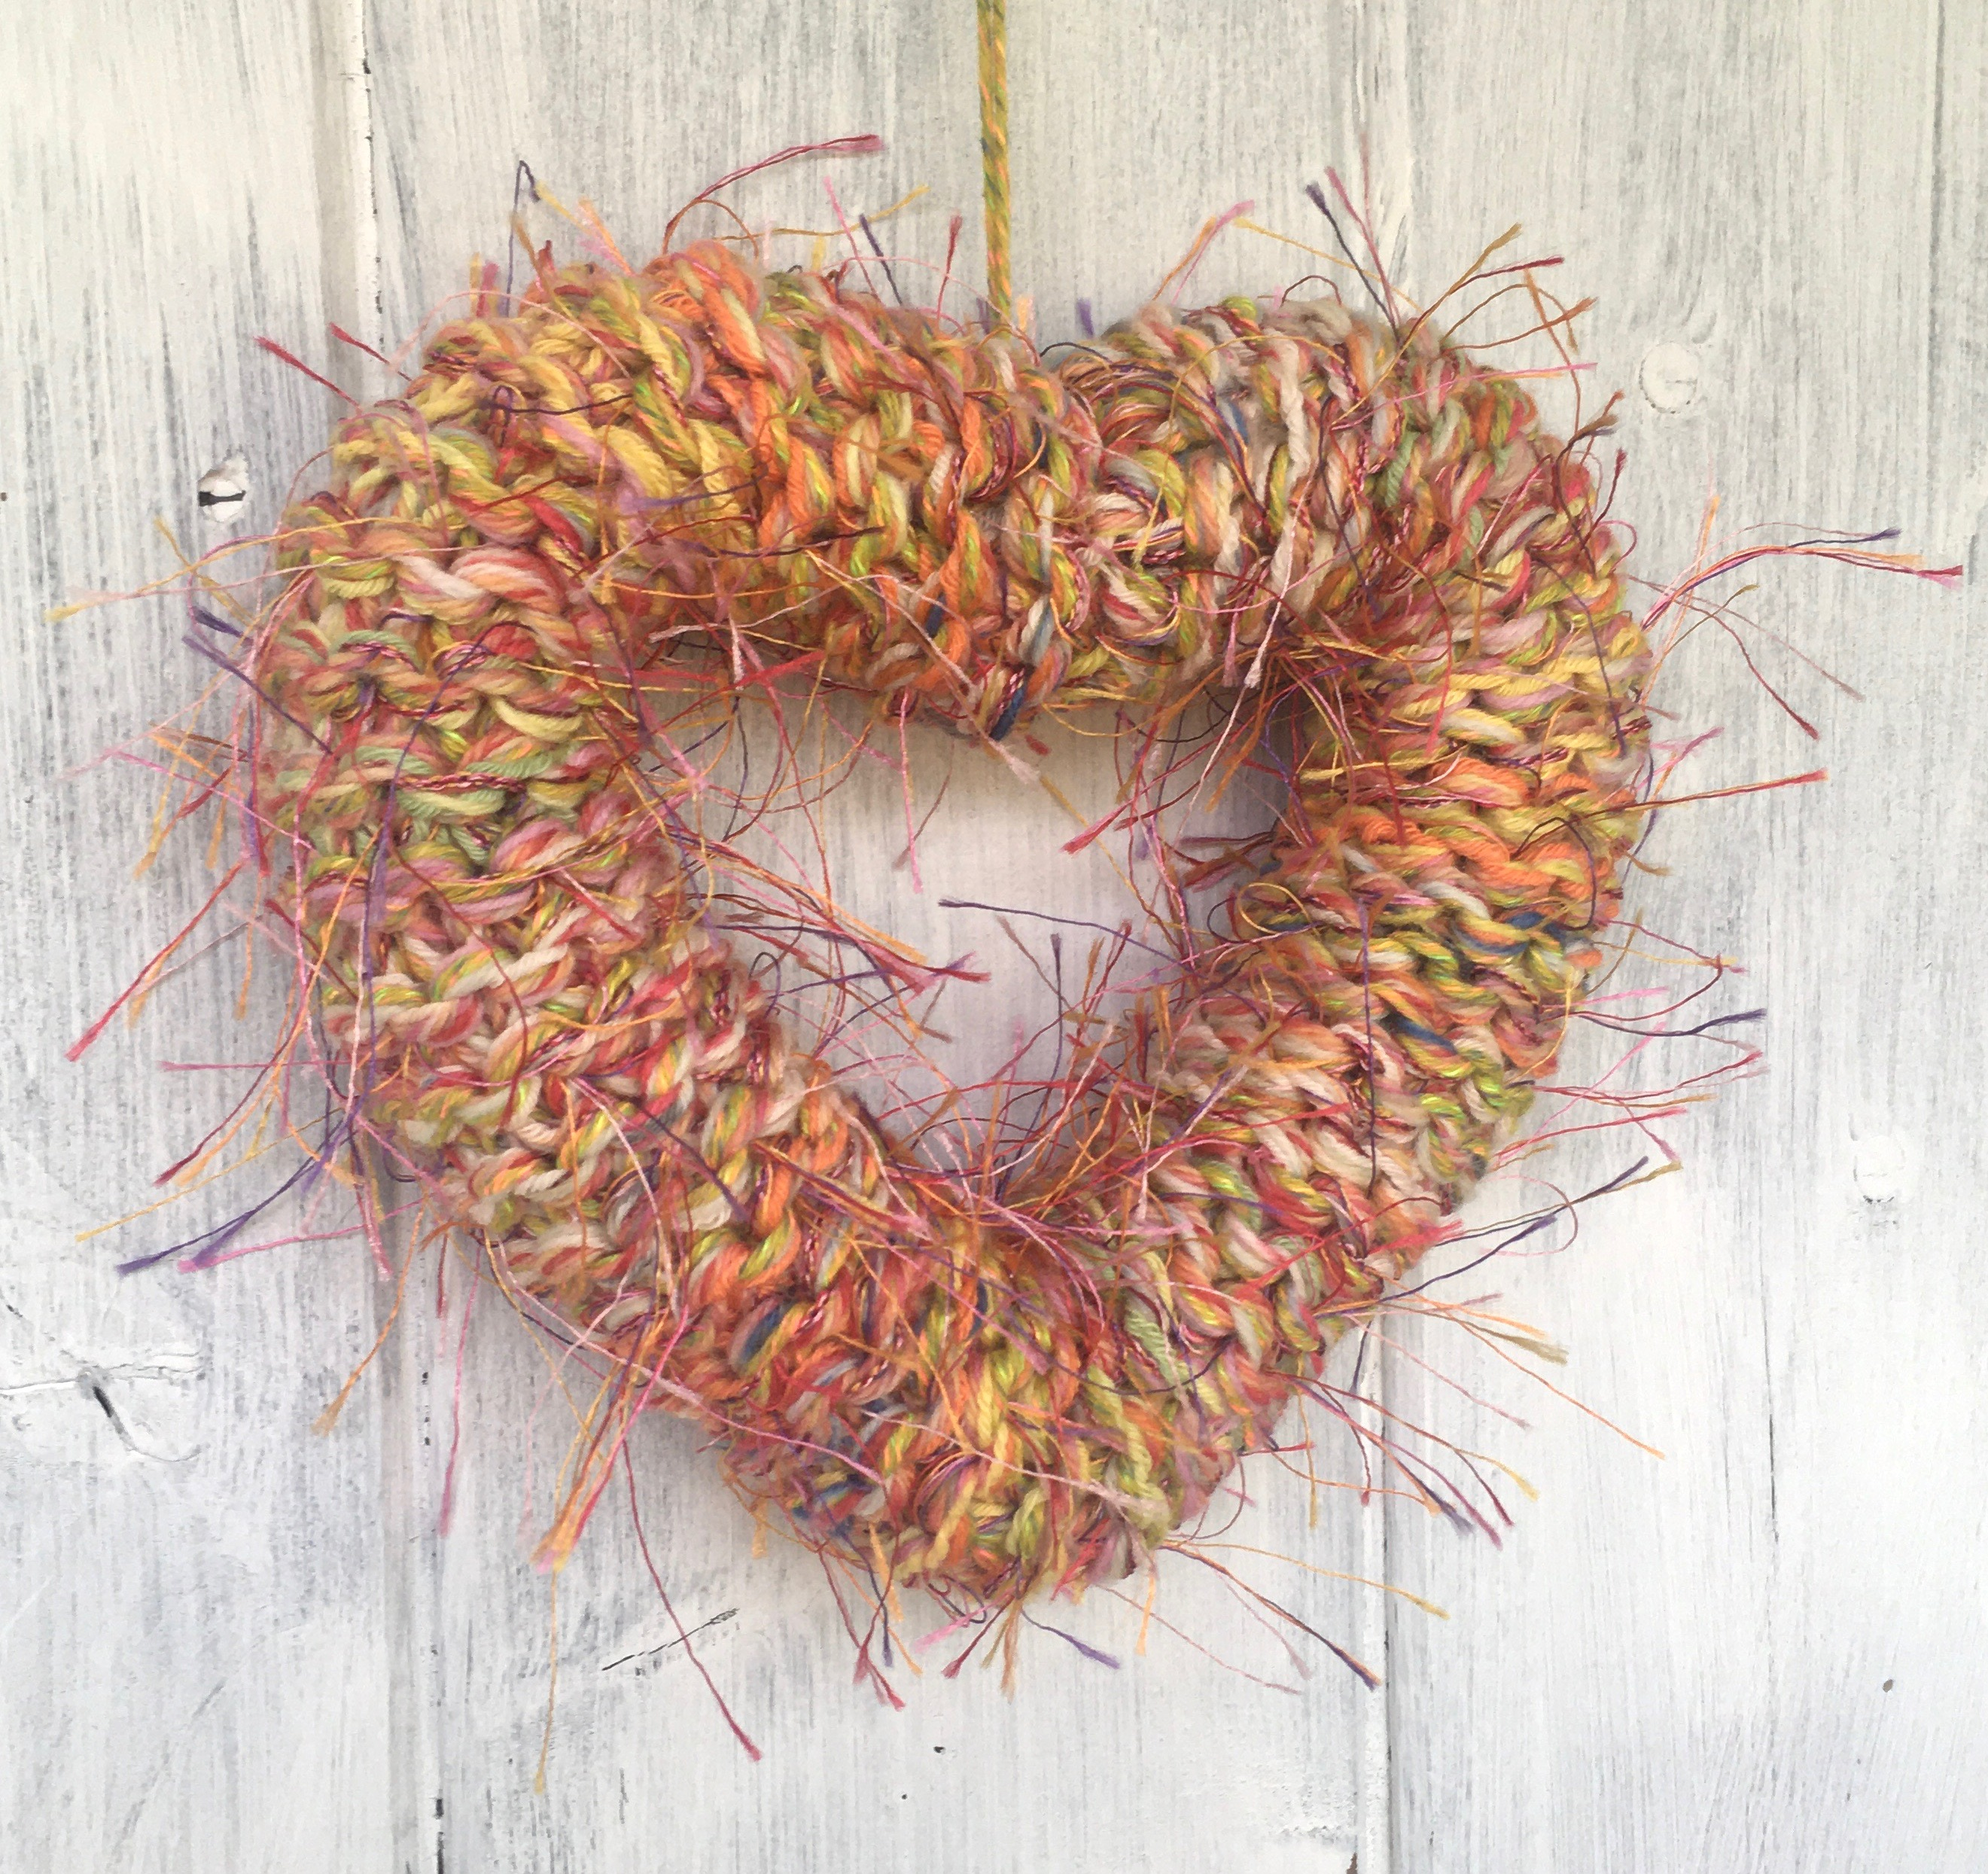 Fluffy Orange and Yellow Knitted Heart